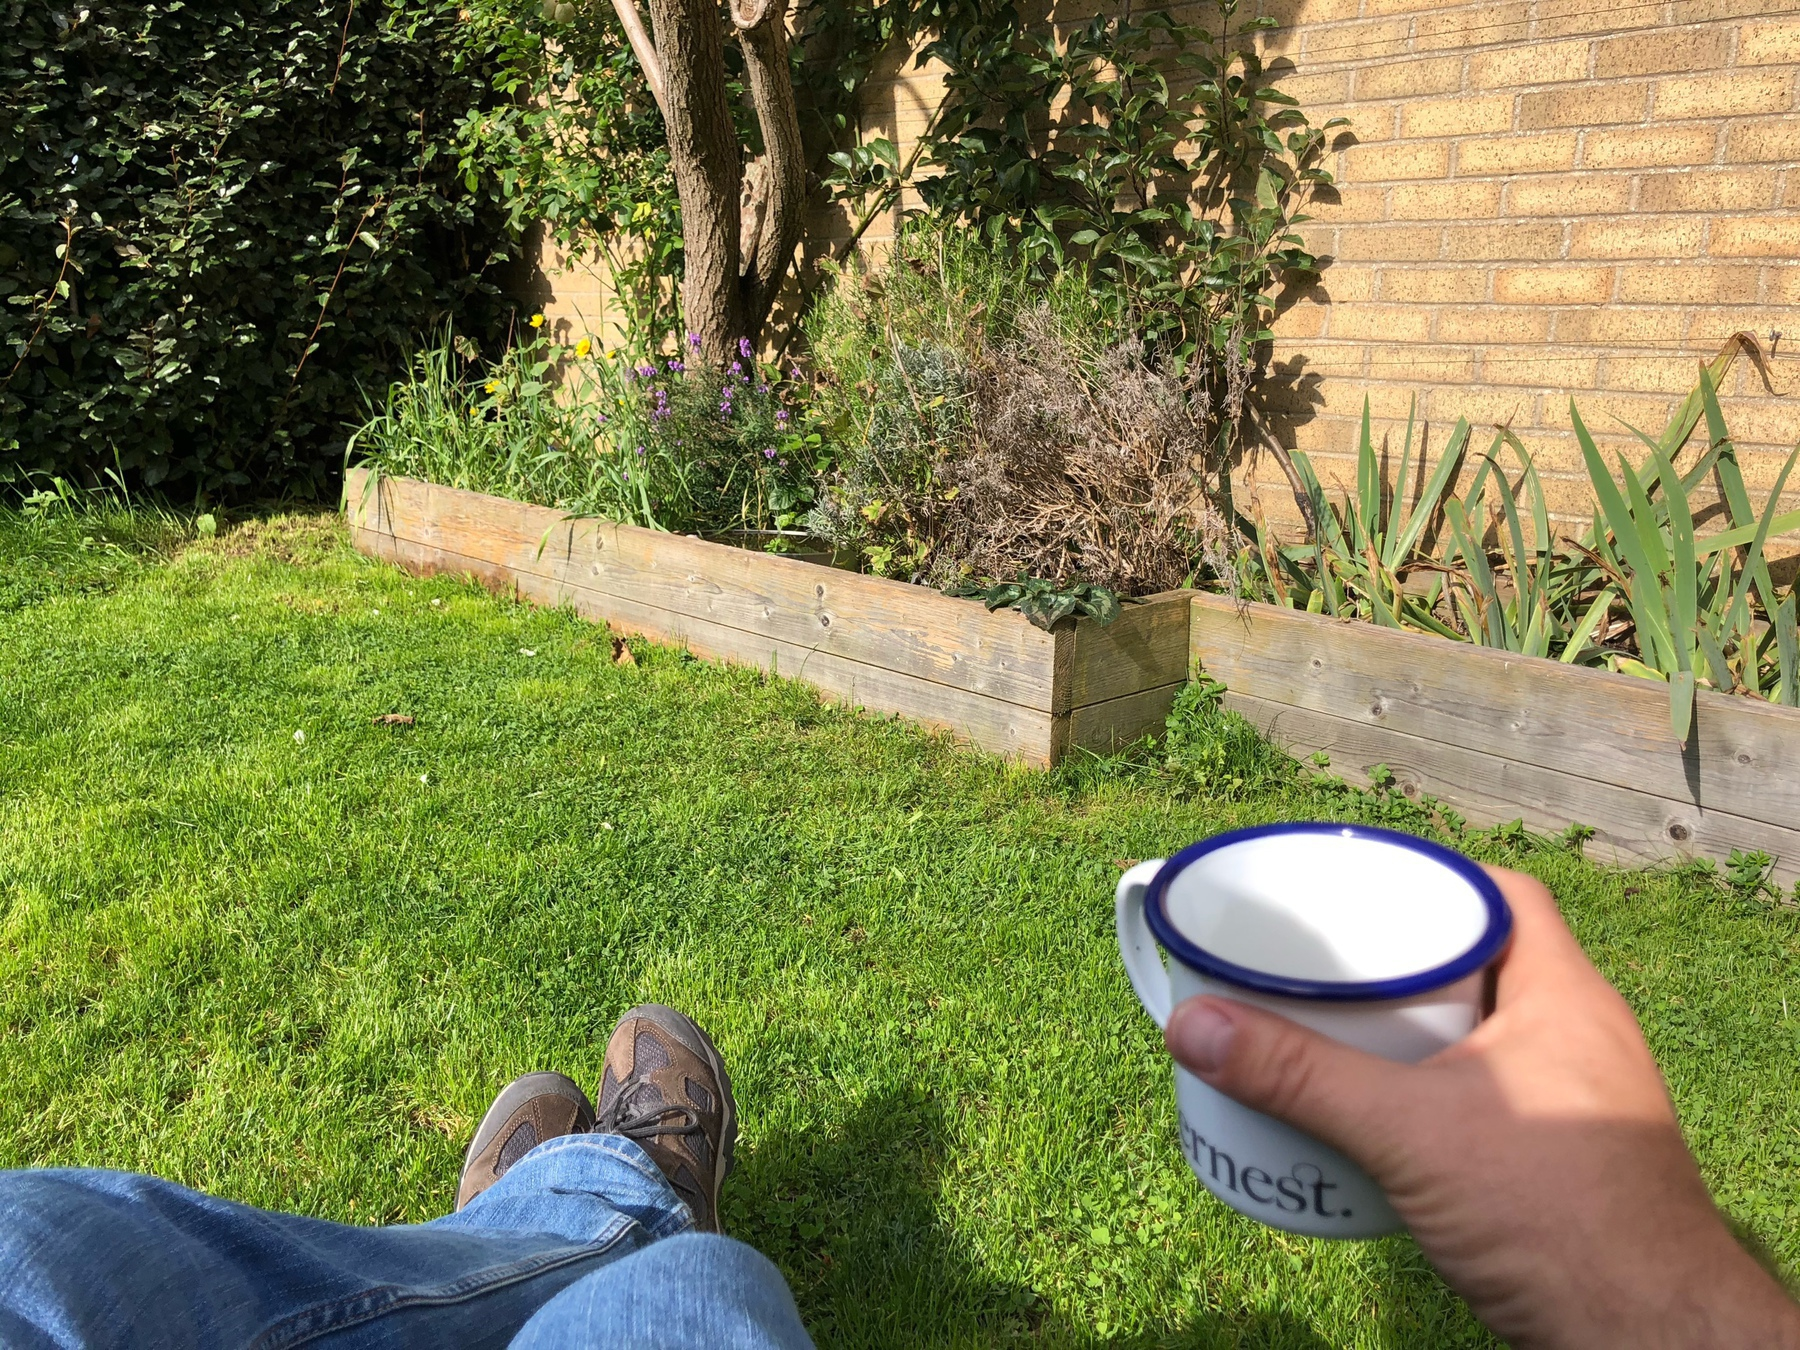 Chilling in the garden with a coffee.